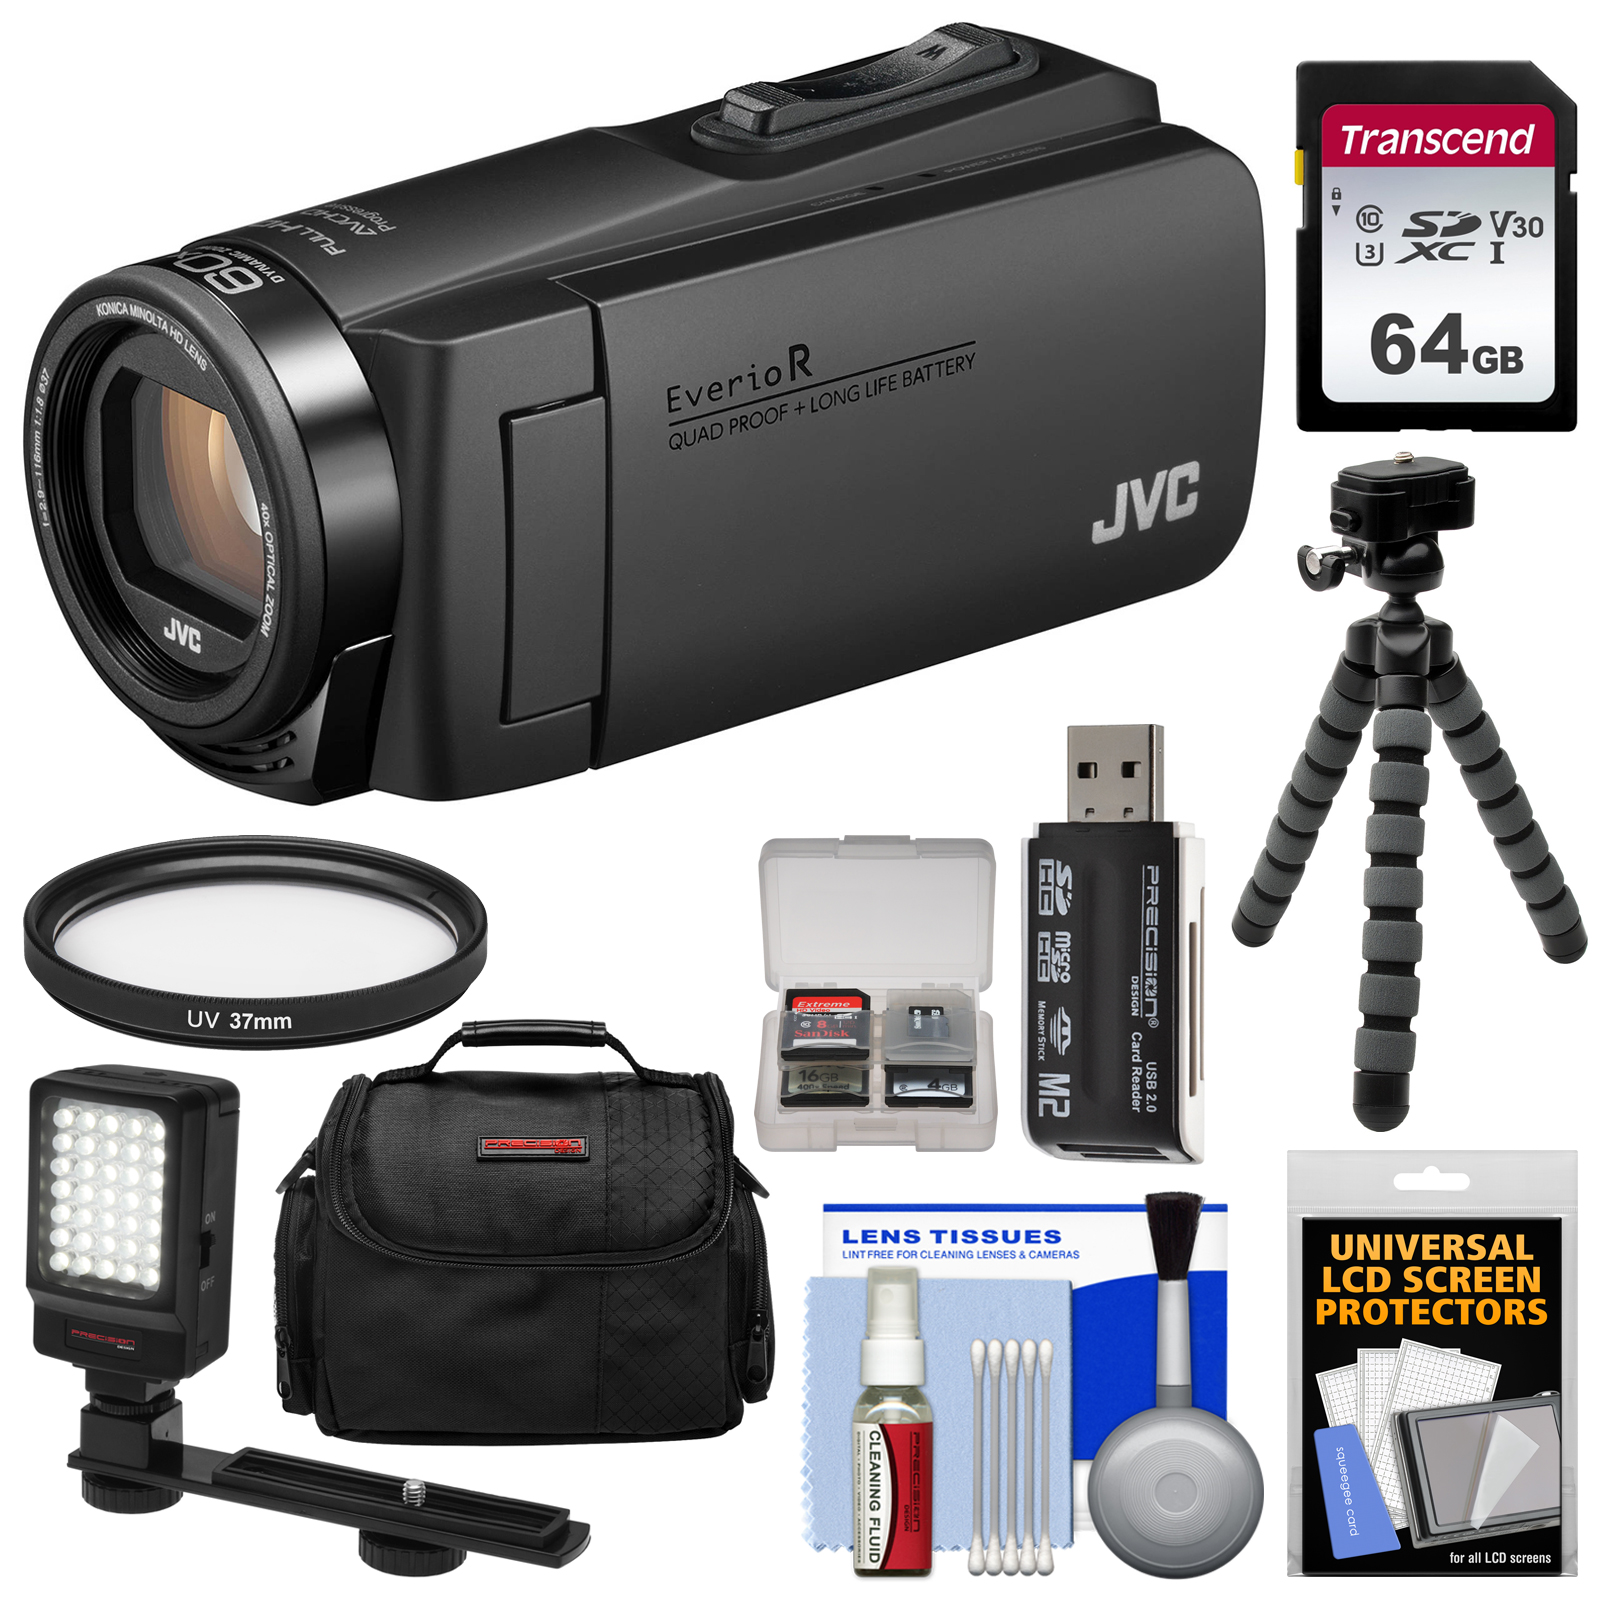 JVC Everio GZ-R560 Quad Proof 32GB 1080p HD Video Camera Camcorder with 64GB Card + LED Video Light + Case + Tripod + Kit